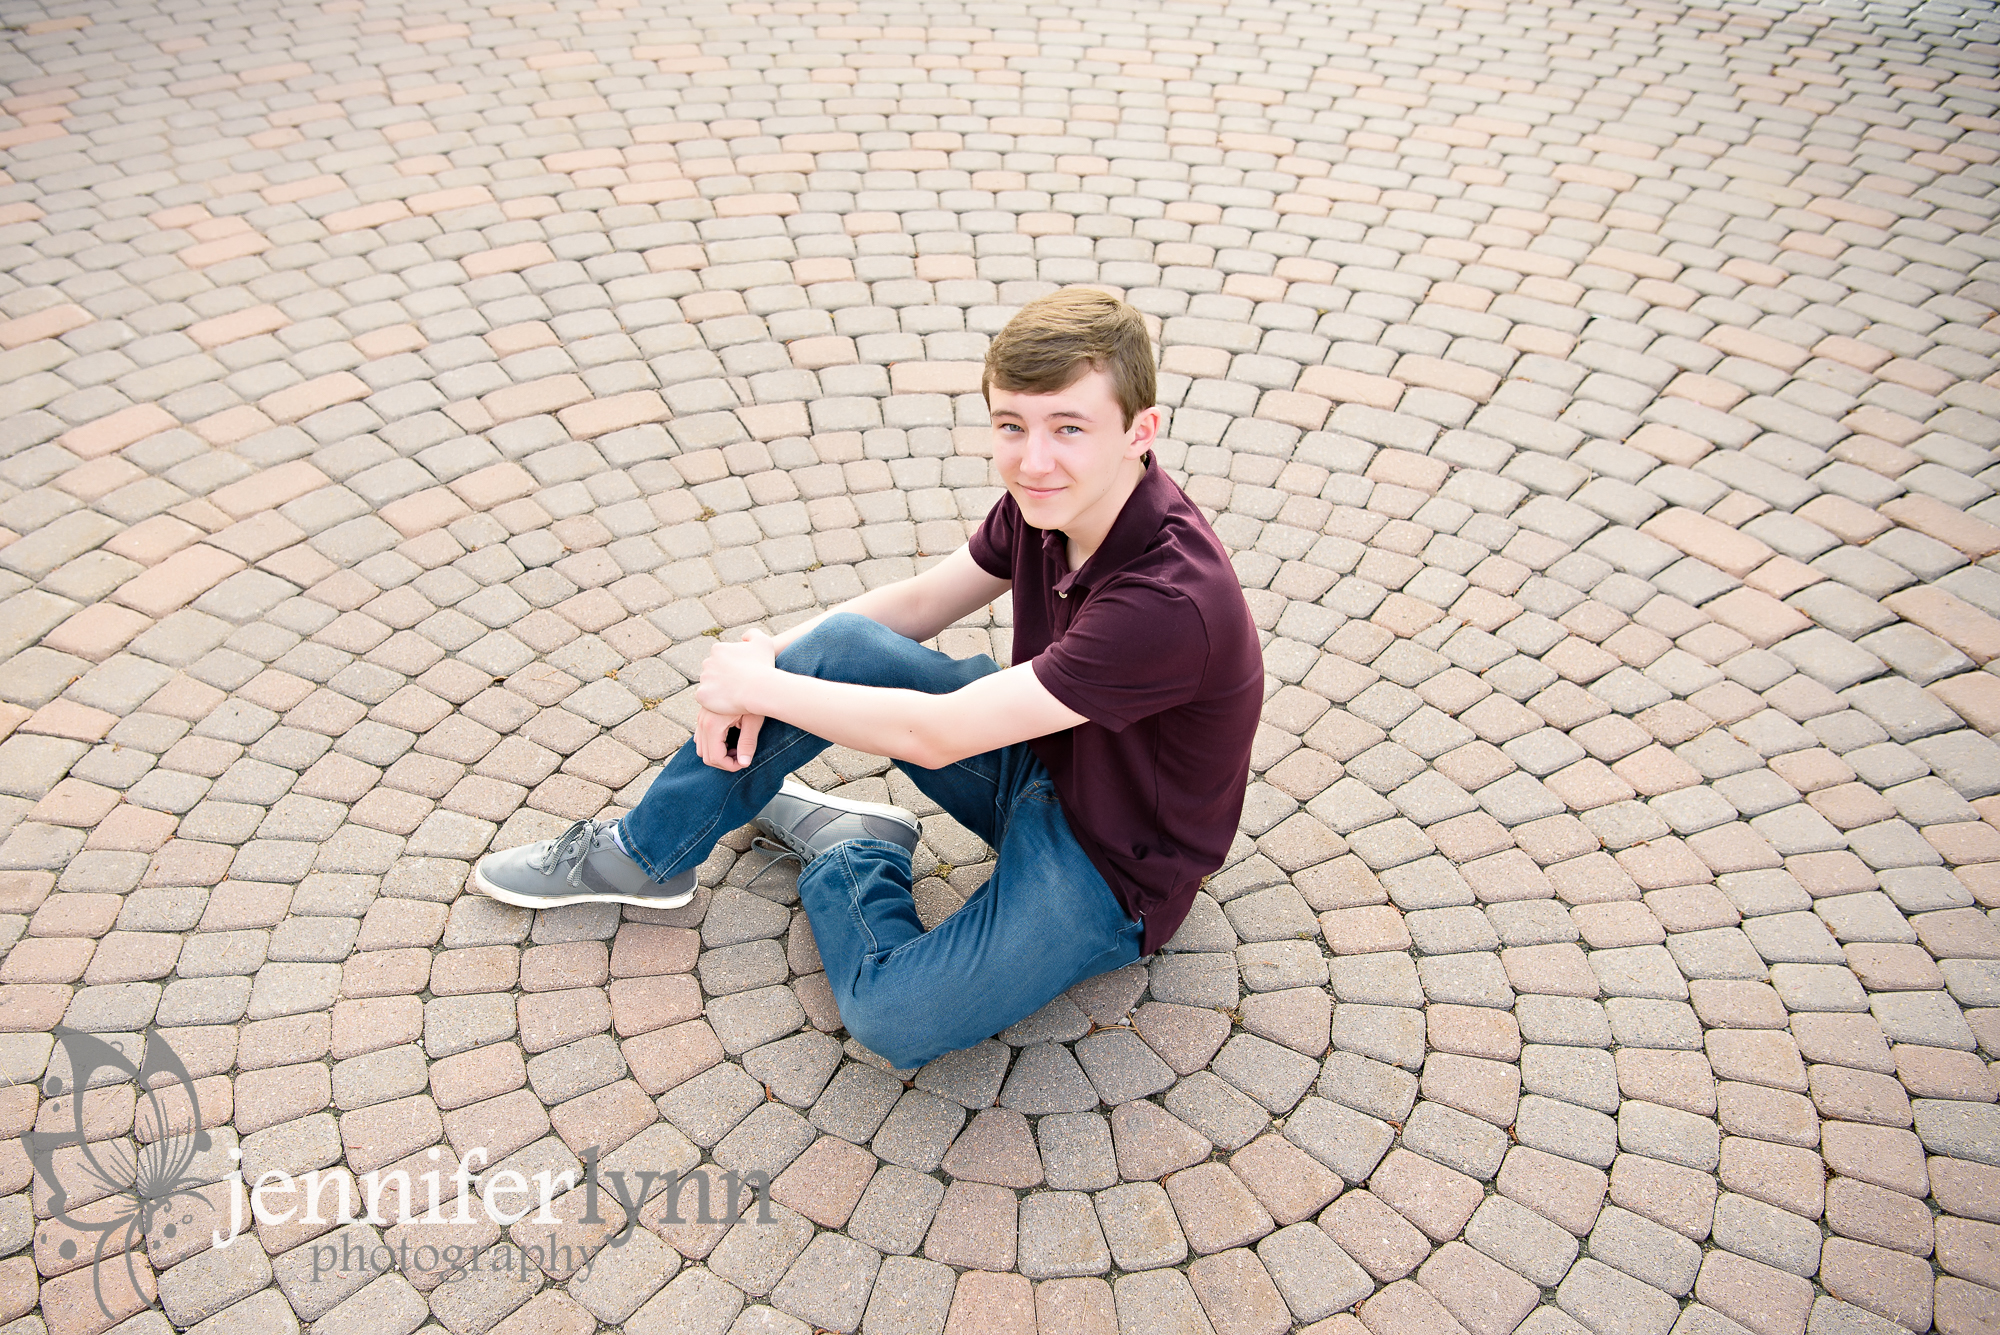 Senior Boy sits on spiral brick patter on ground